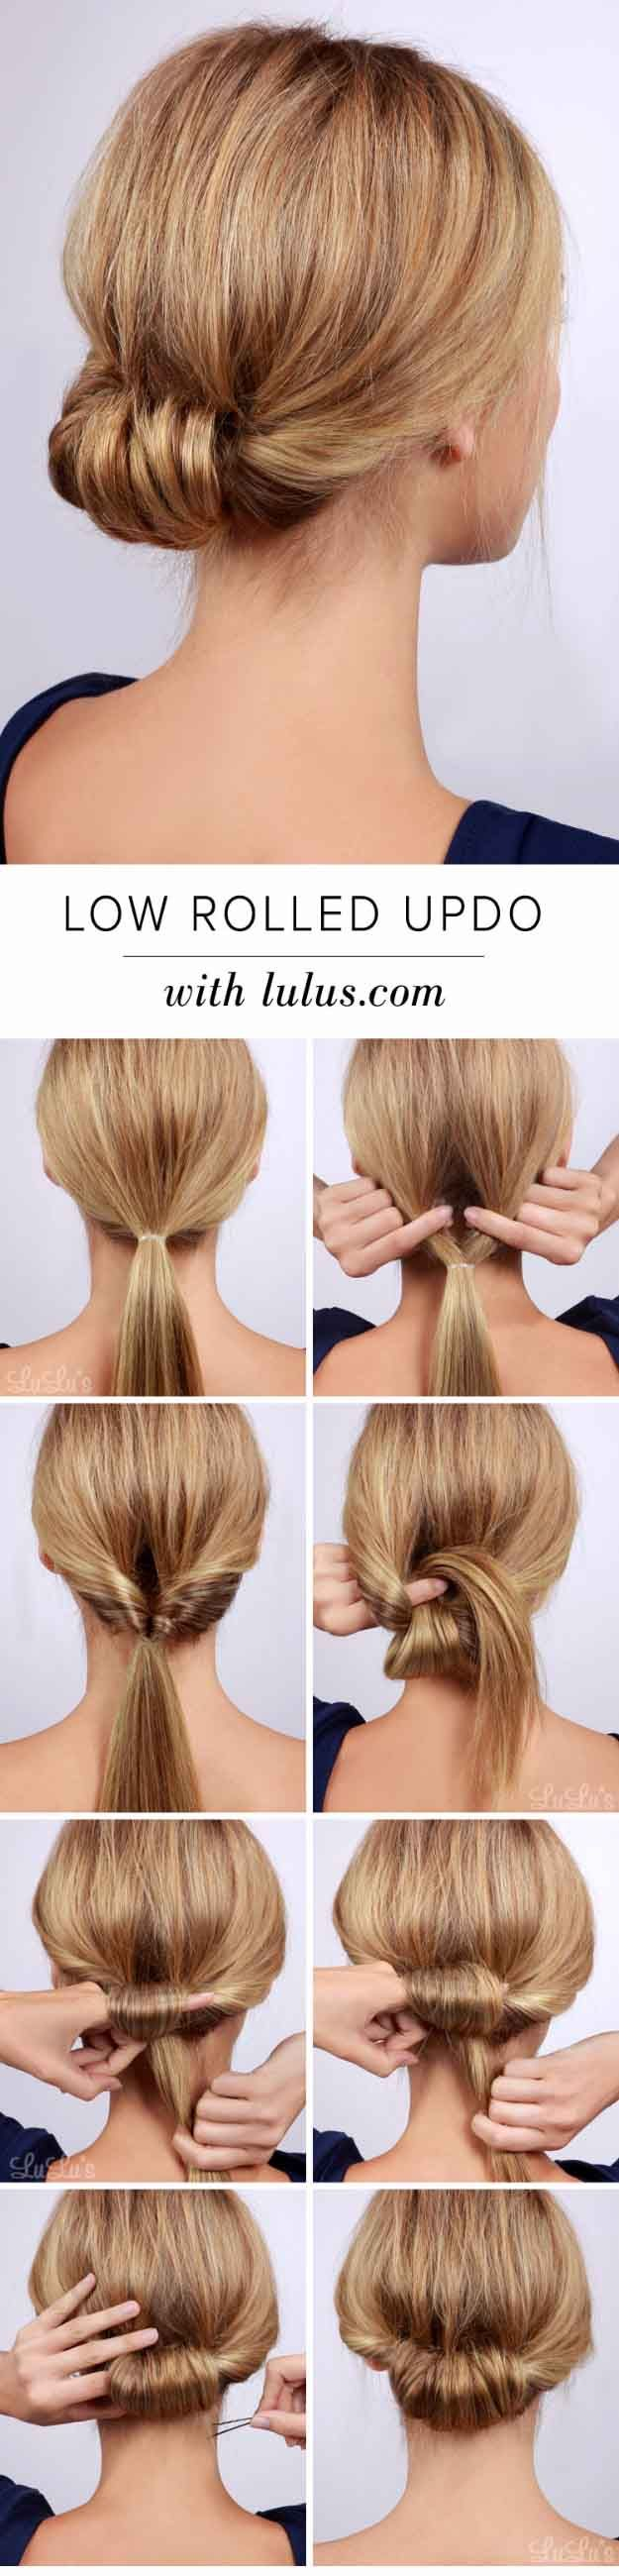 Best Hairstyles for Brides - Low Rolled Updo Hair Tutorial- Amazing Hair Styles ...